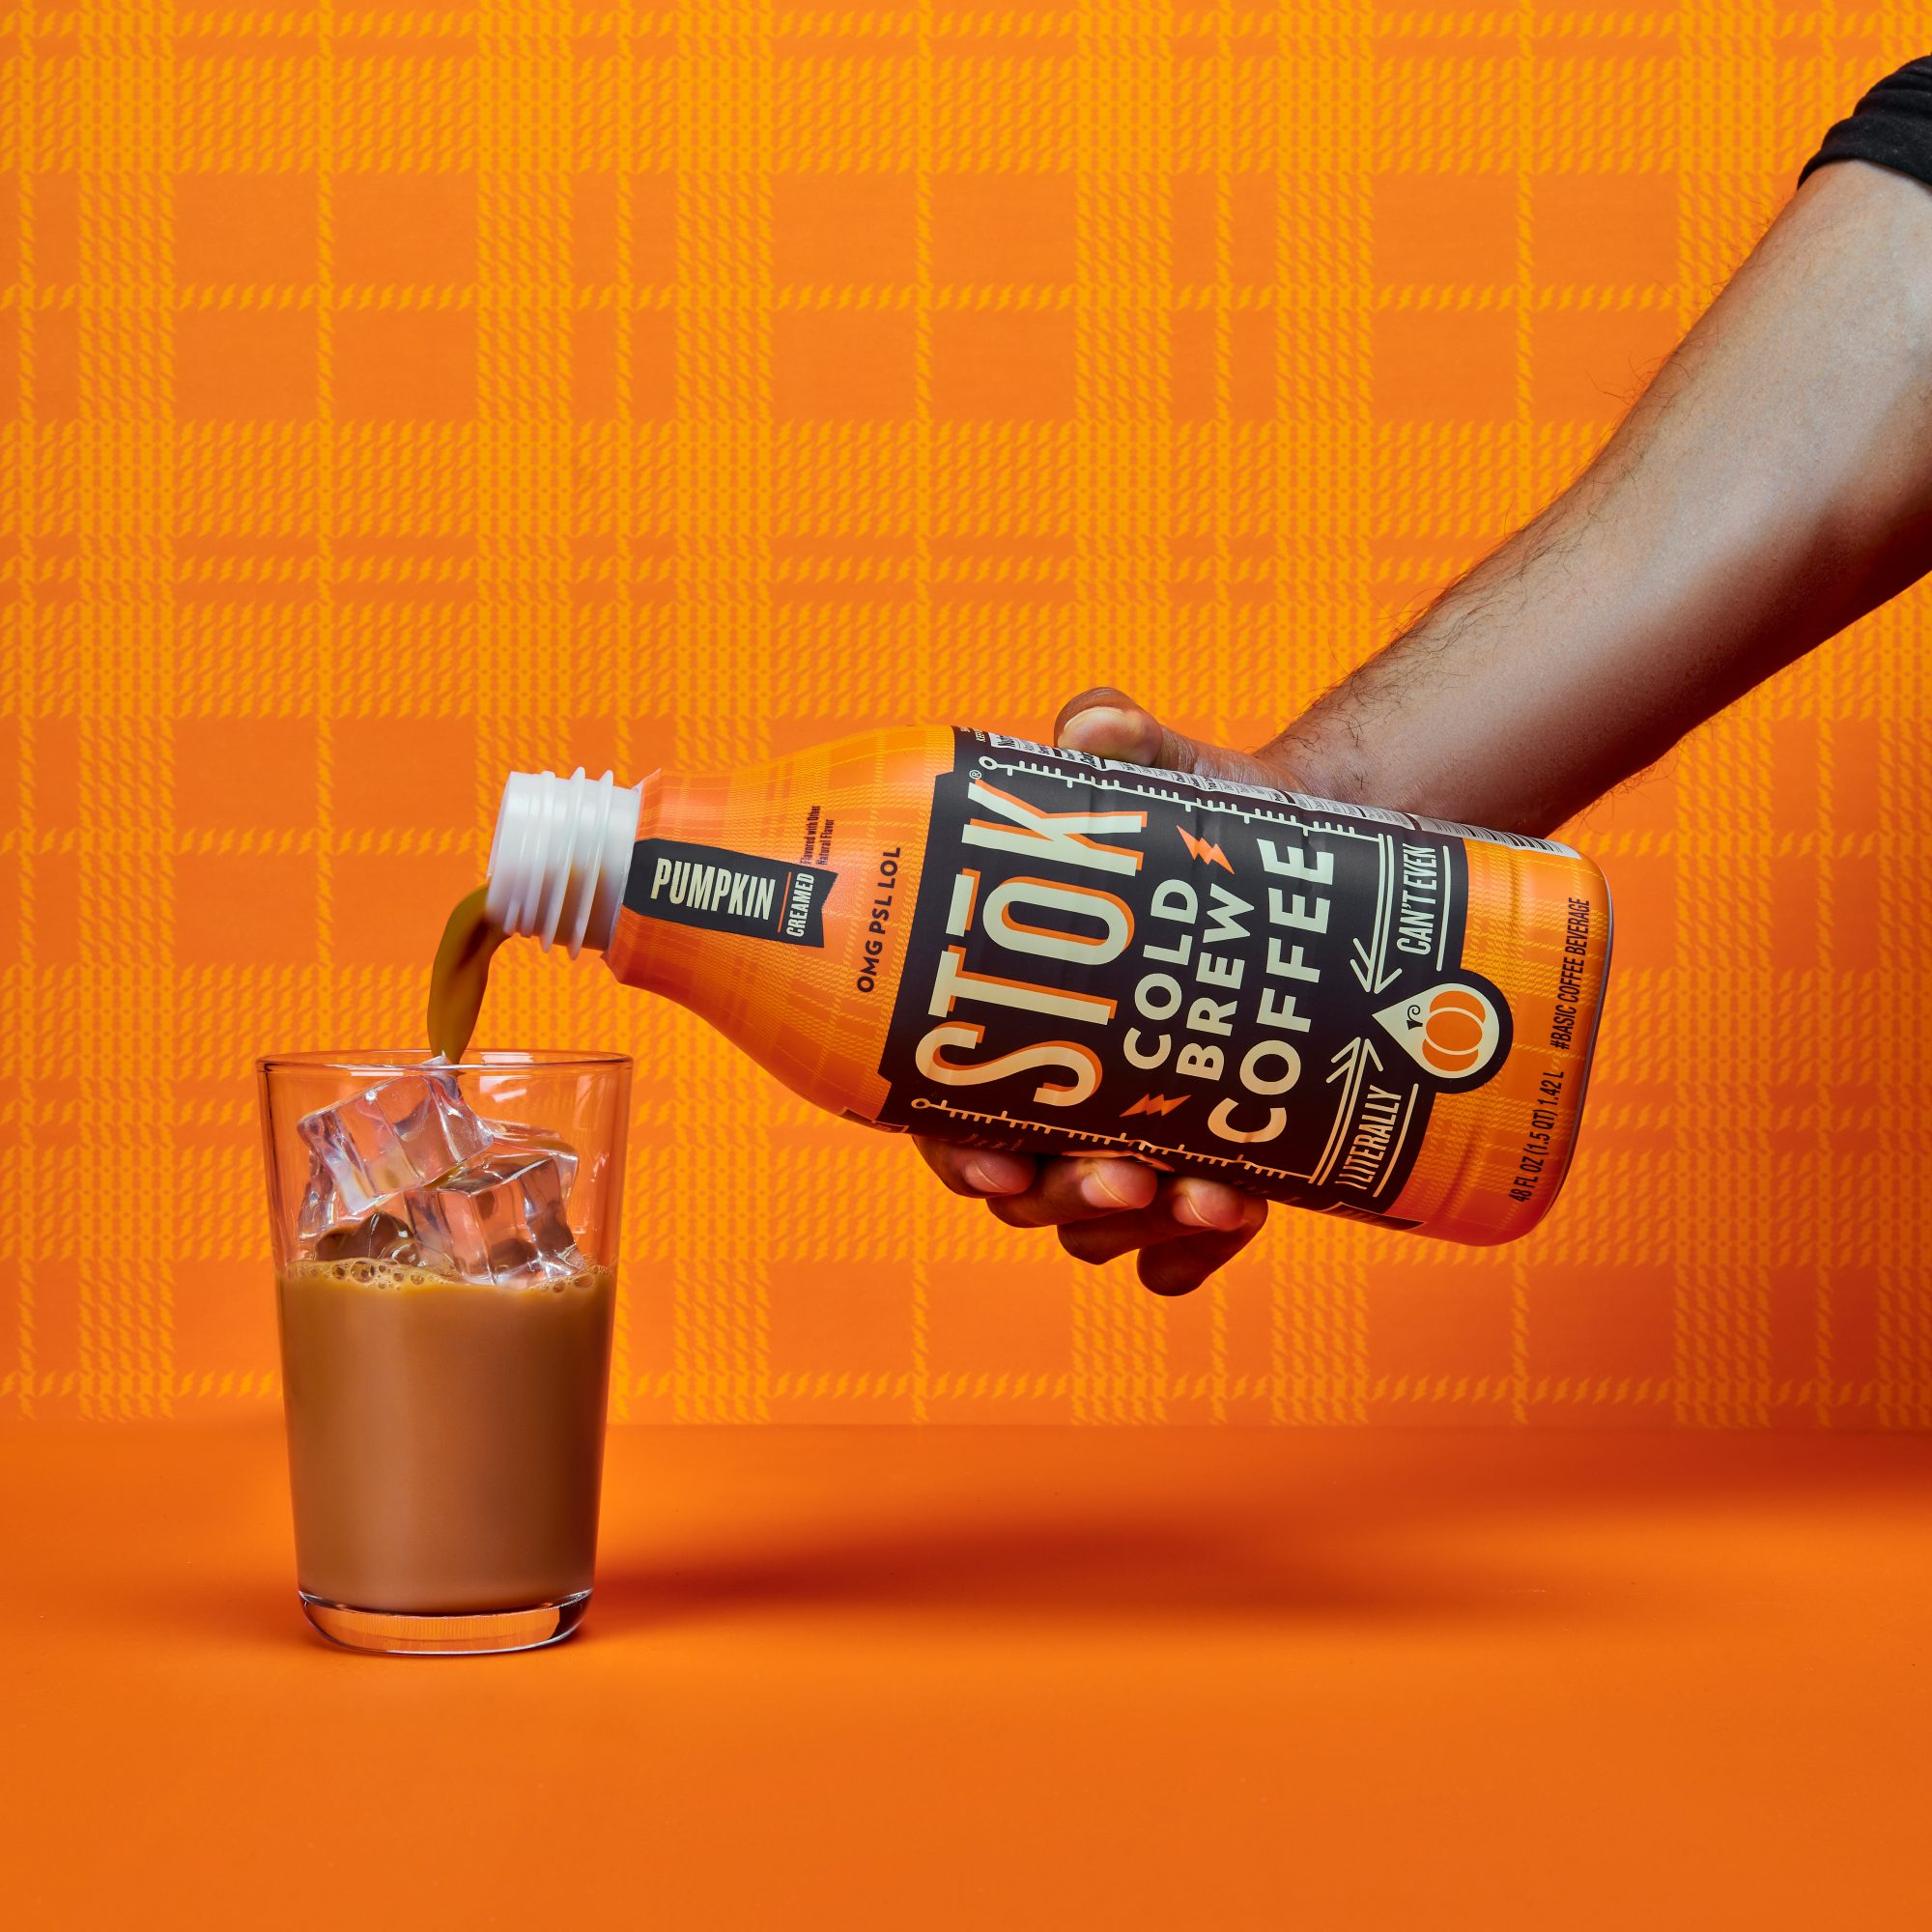 STok Pumpkin Lifestyle Bottle being poured into a tall glass with ice